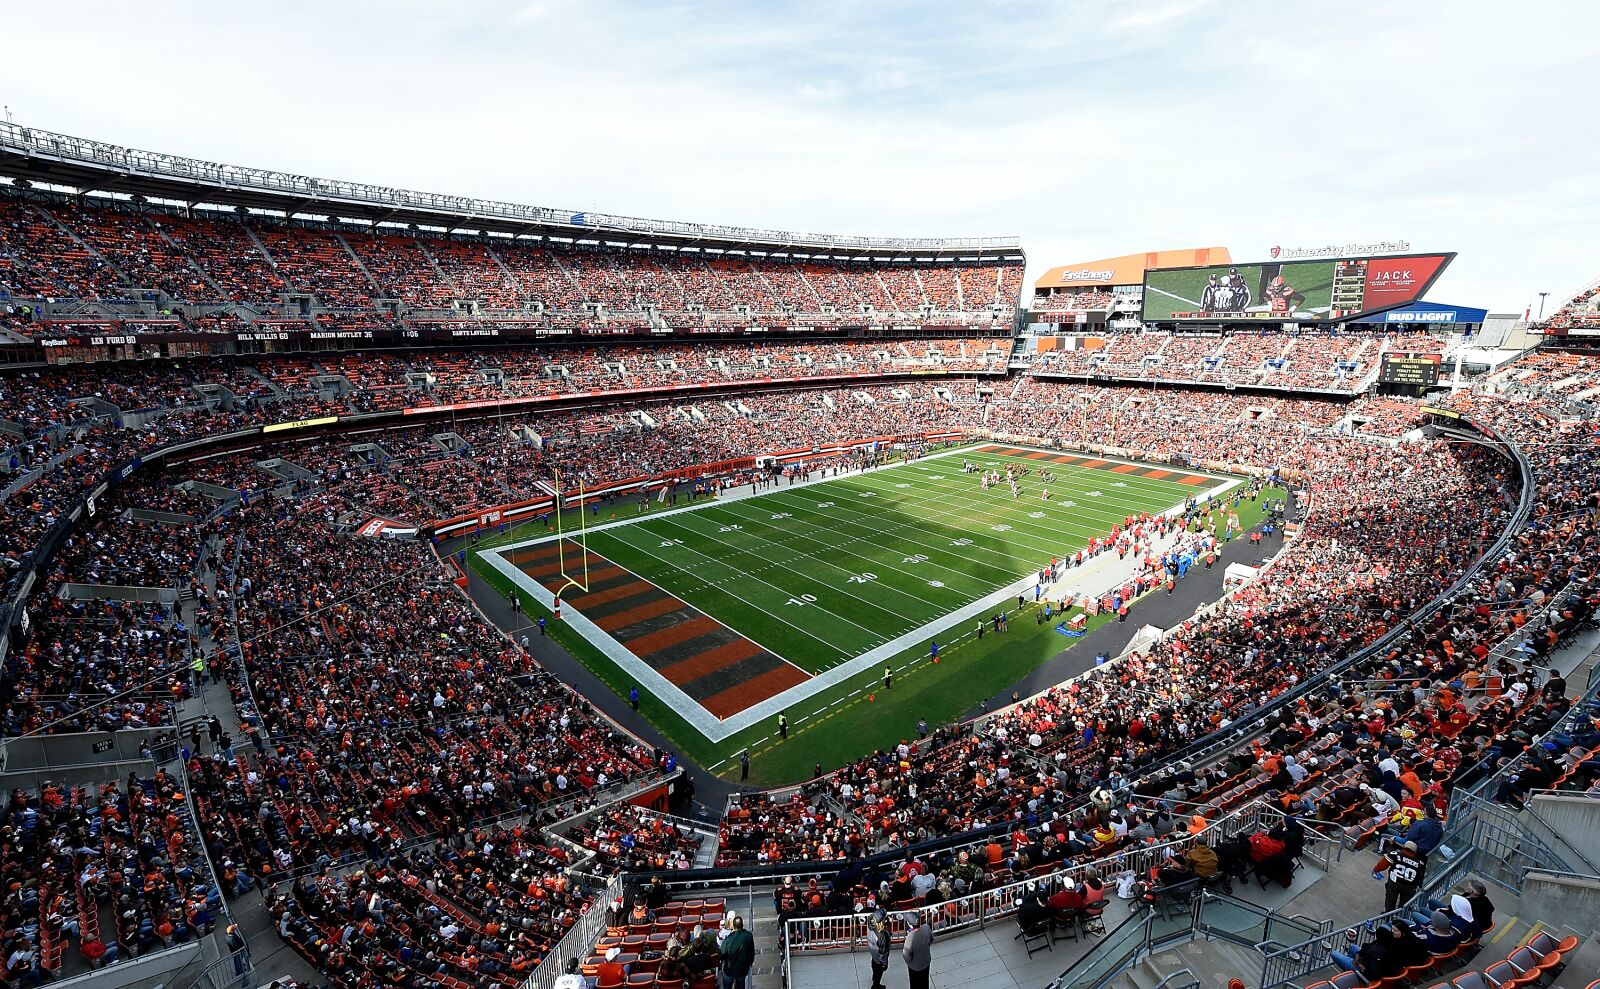 Cleveland Browns: The 100 Year offseason